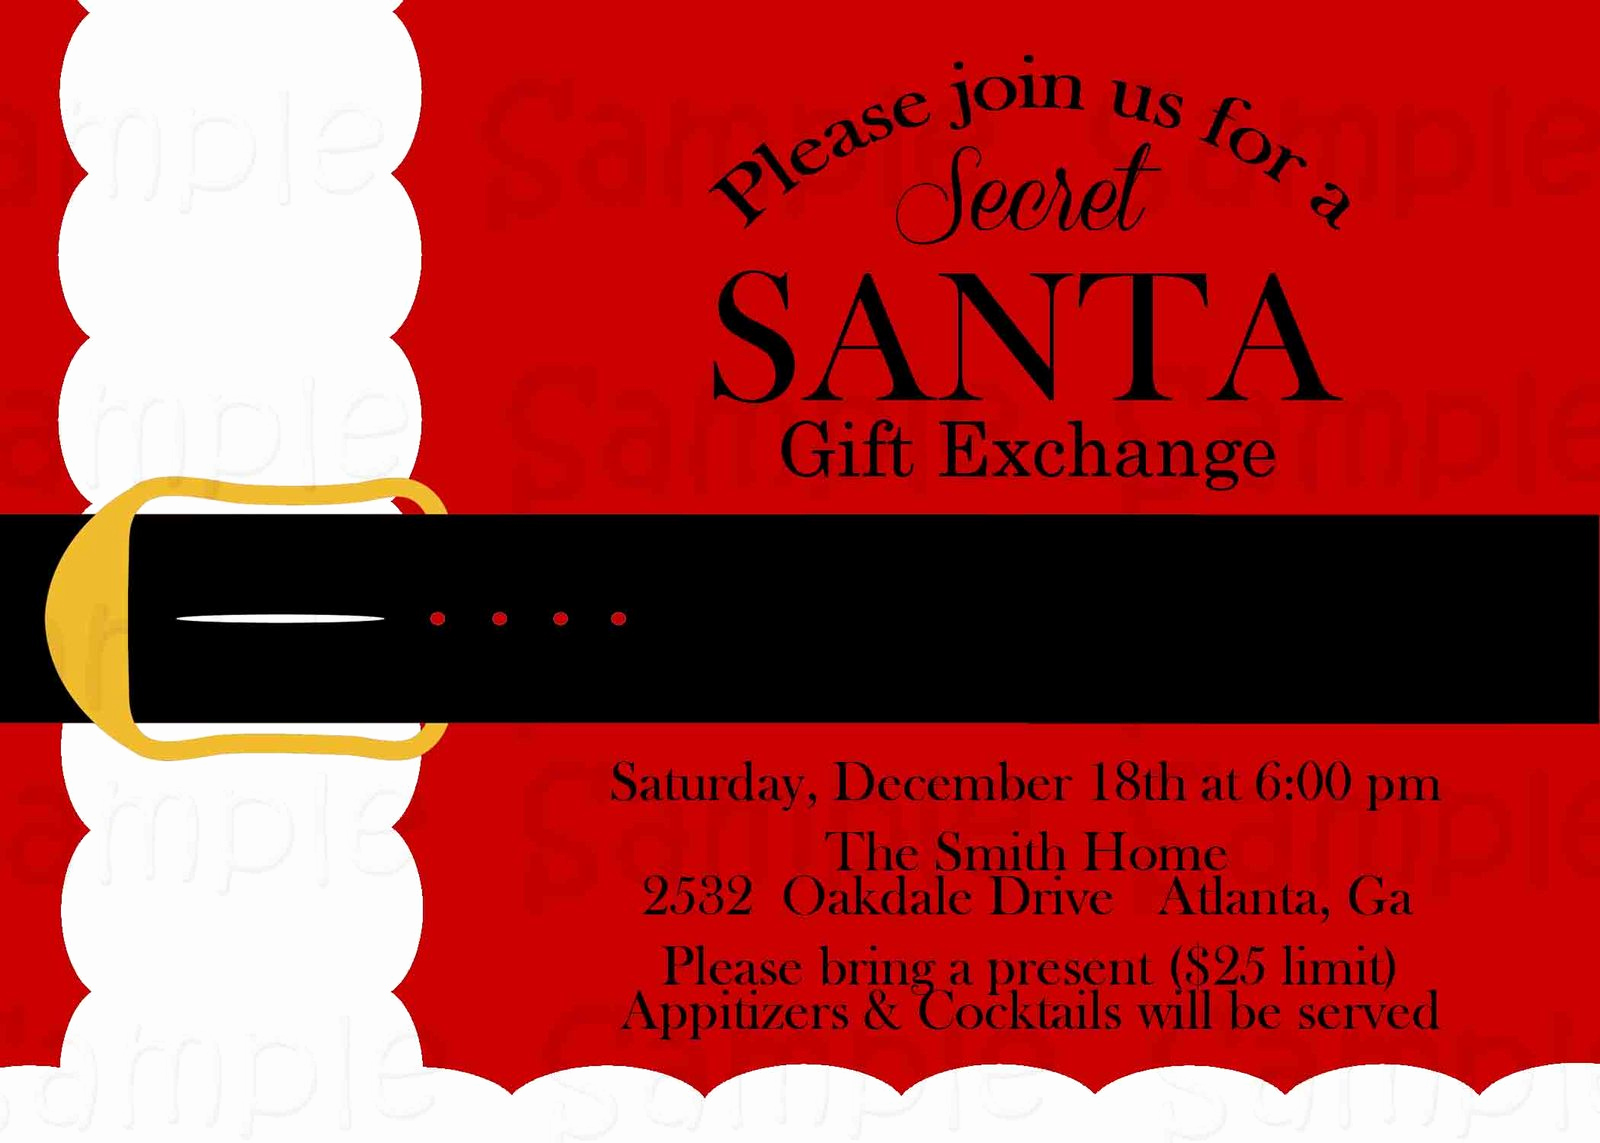 Secret Santa Invitation Template Best Of Gifts for Secret Santa Exchange 2015